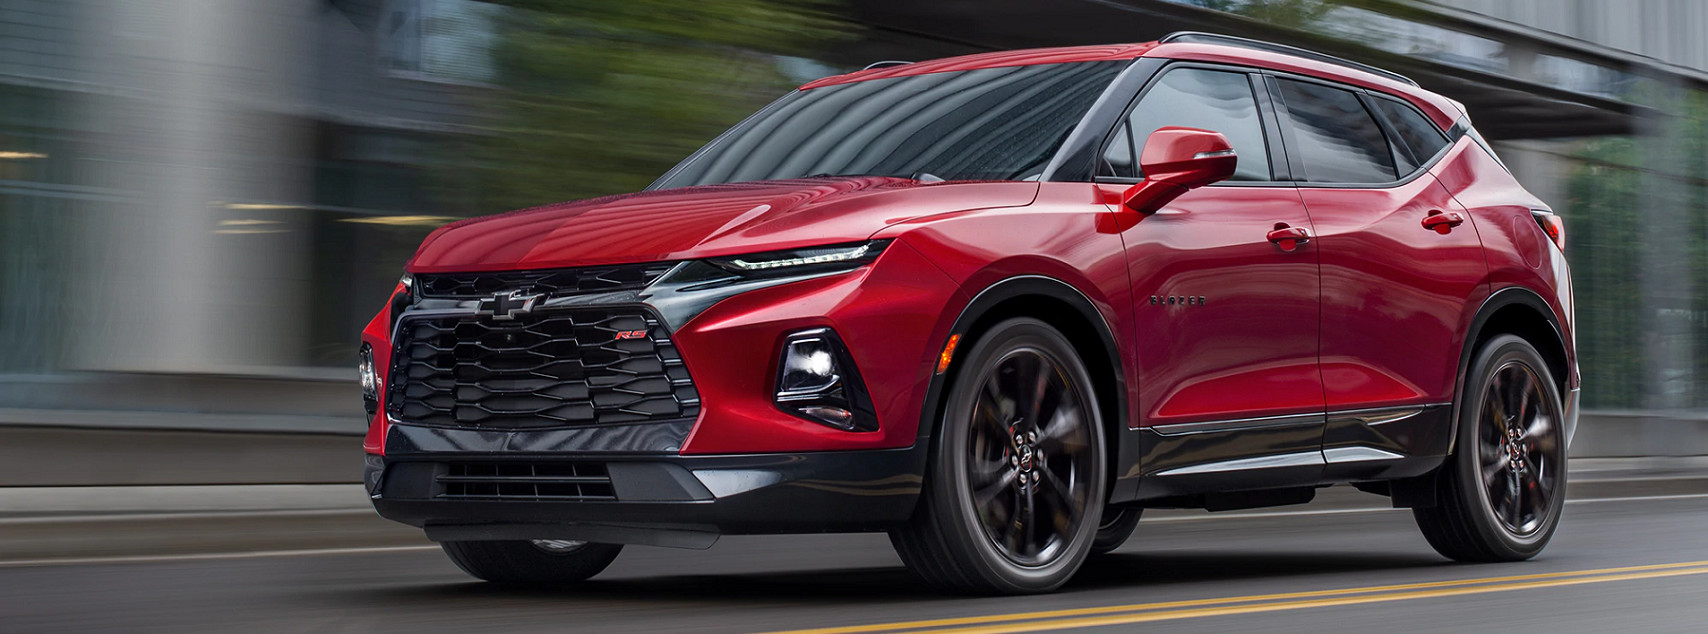 2020 Chevrolet Blazer for Sale near St. Johns, MI